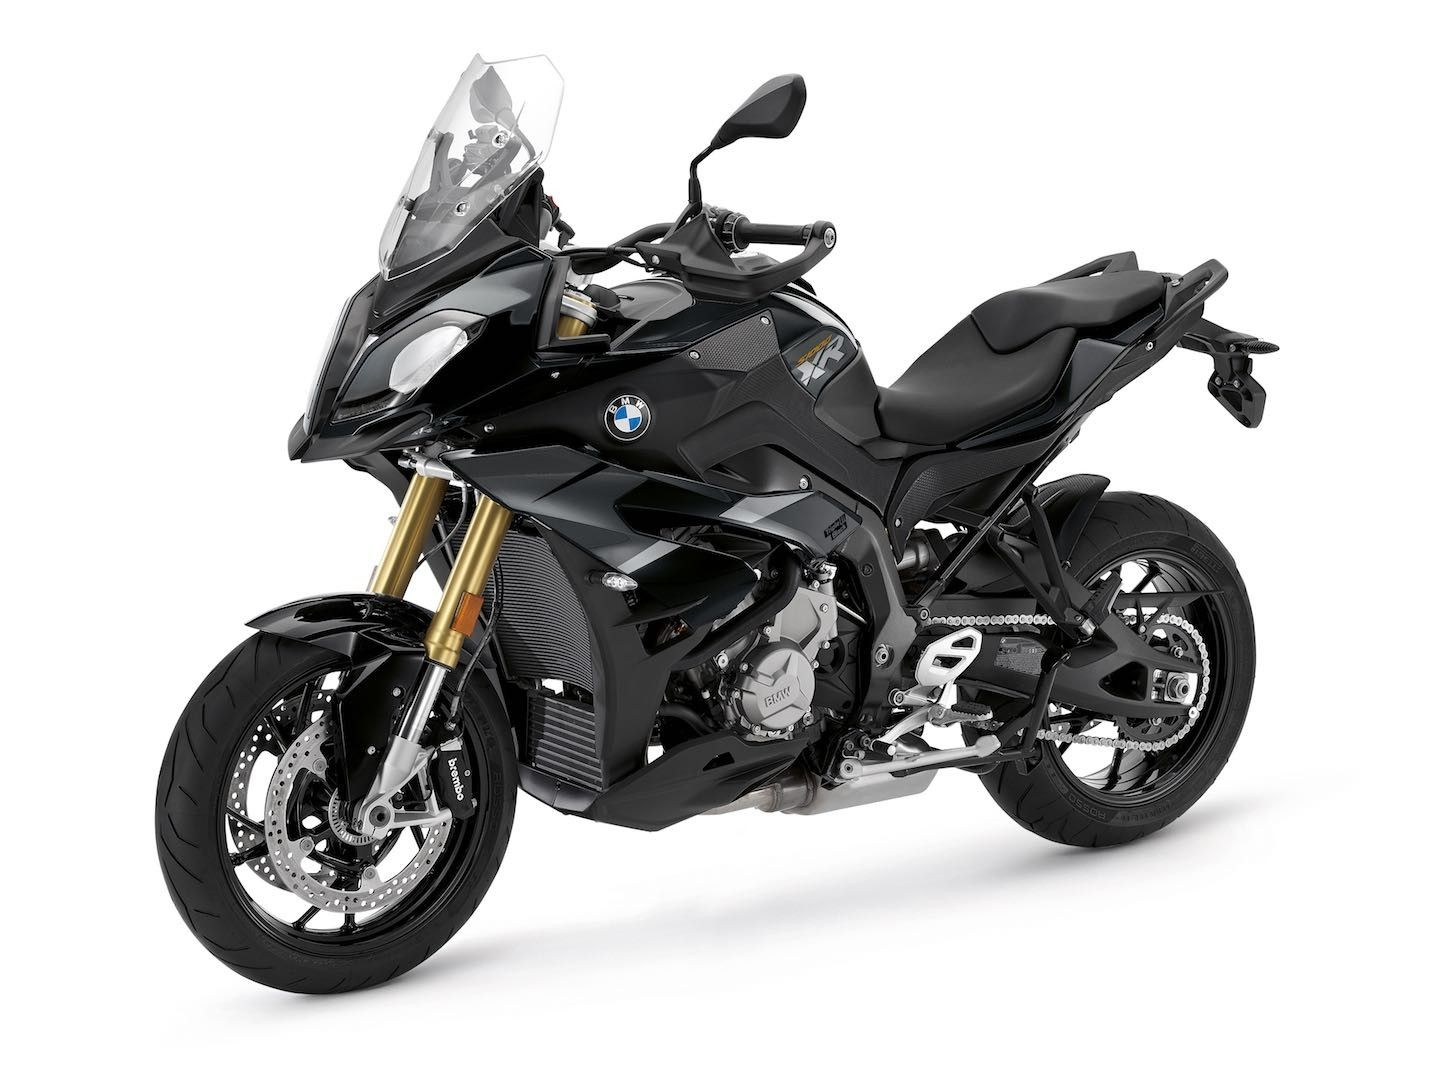 2019 Bmw Bikes Price Car Gallery With Images Bmw Motorcycles